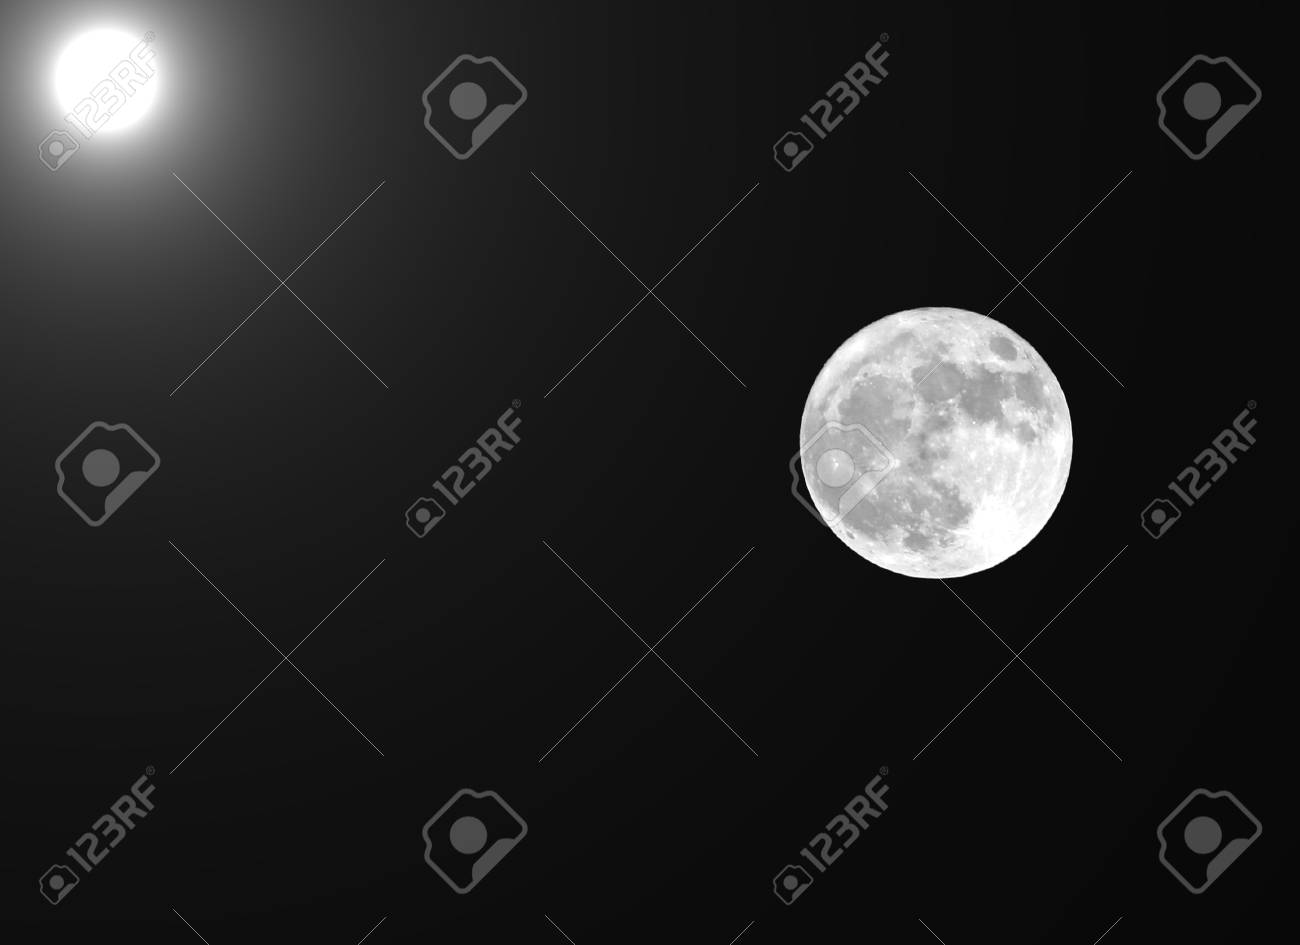 full moon and the sun in the same photographic frame stock photo